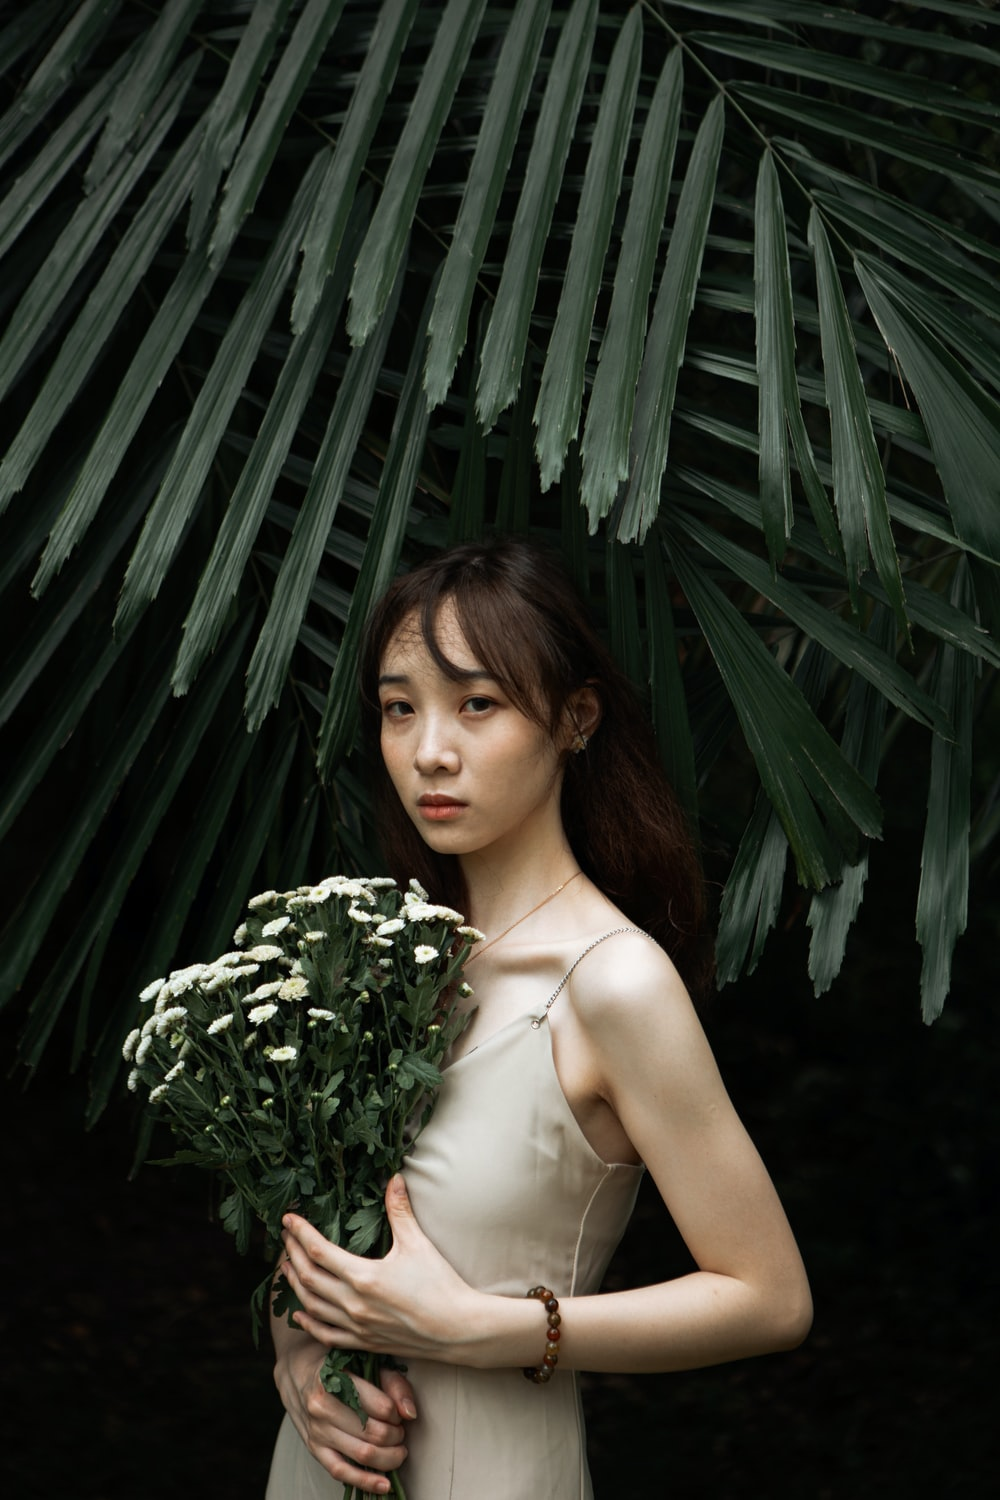 woman in white spaghetti strap top standing beside green plant